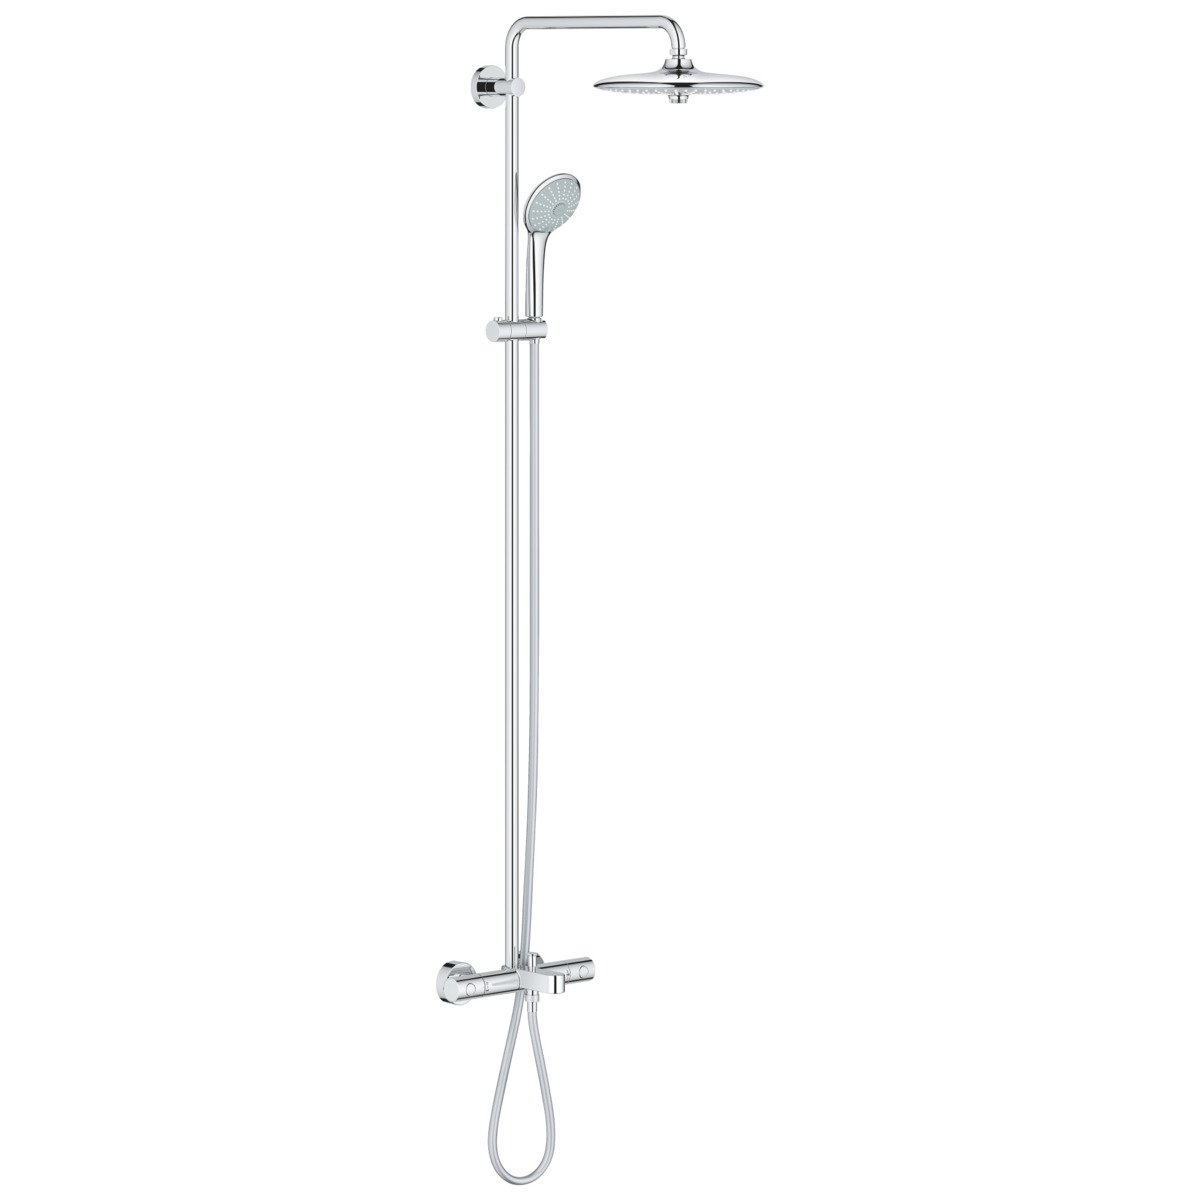 Grohe Euphoria Douchesysteem 180 Chroom Grohe Euphoria Douchesysteem Met Badkraan Met Euphoria Hoofddouche